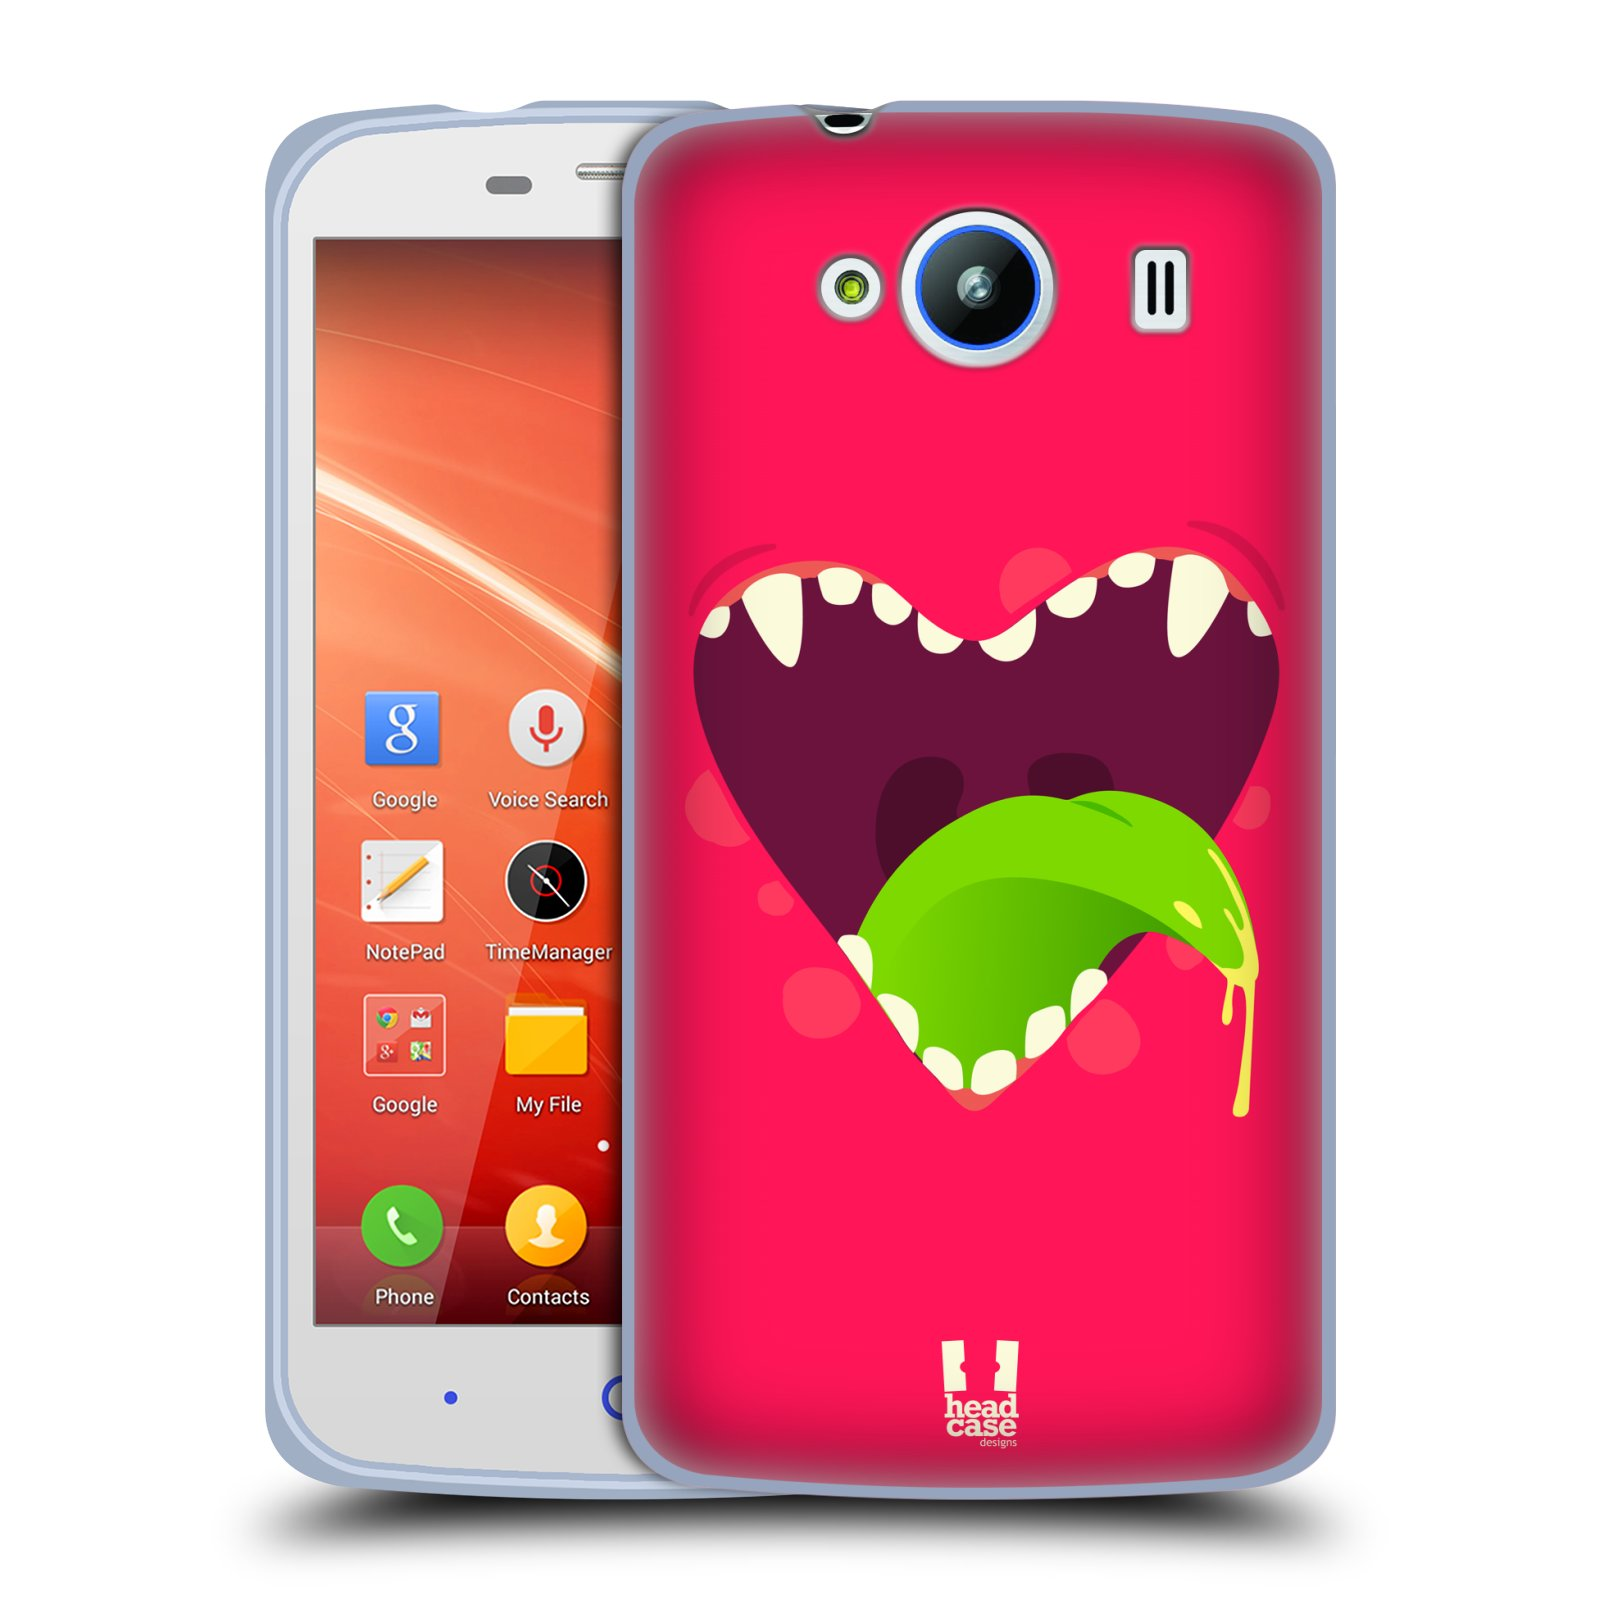 Smartphone Libre Zte Blade L2 Head Case Gobble Up Soft Gel Case For Zte Blade L2 Plus Ebay